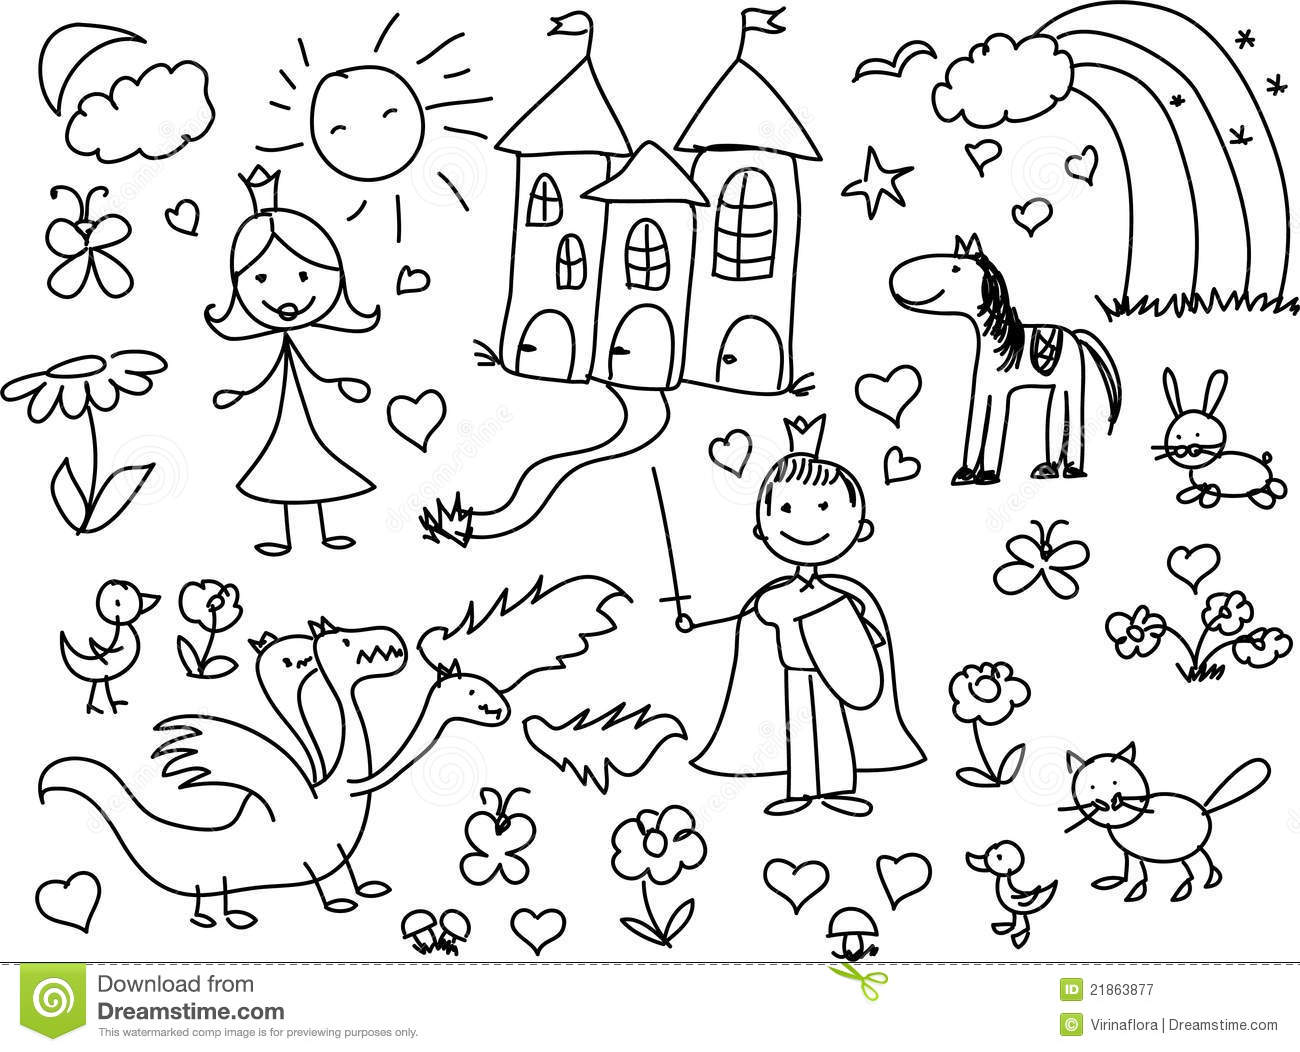 Children 39 s drawings vector stock vector image of dragon 21863877 Drawing images free download